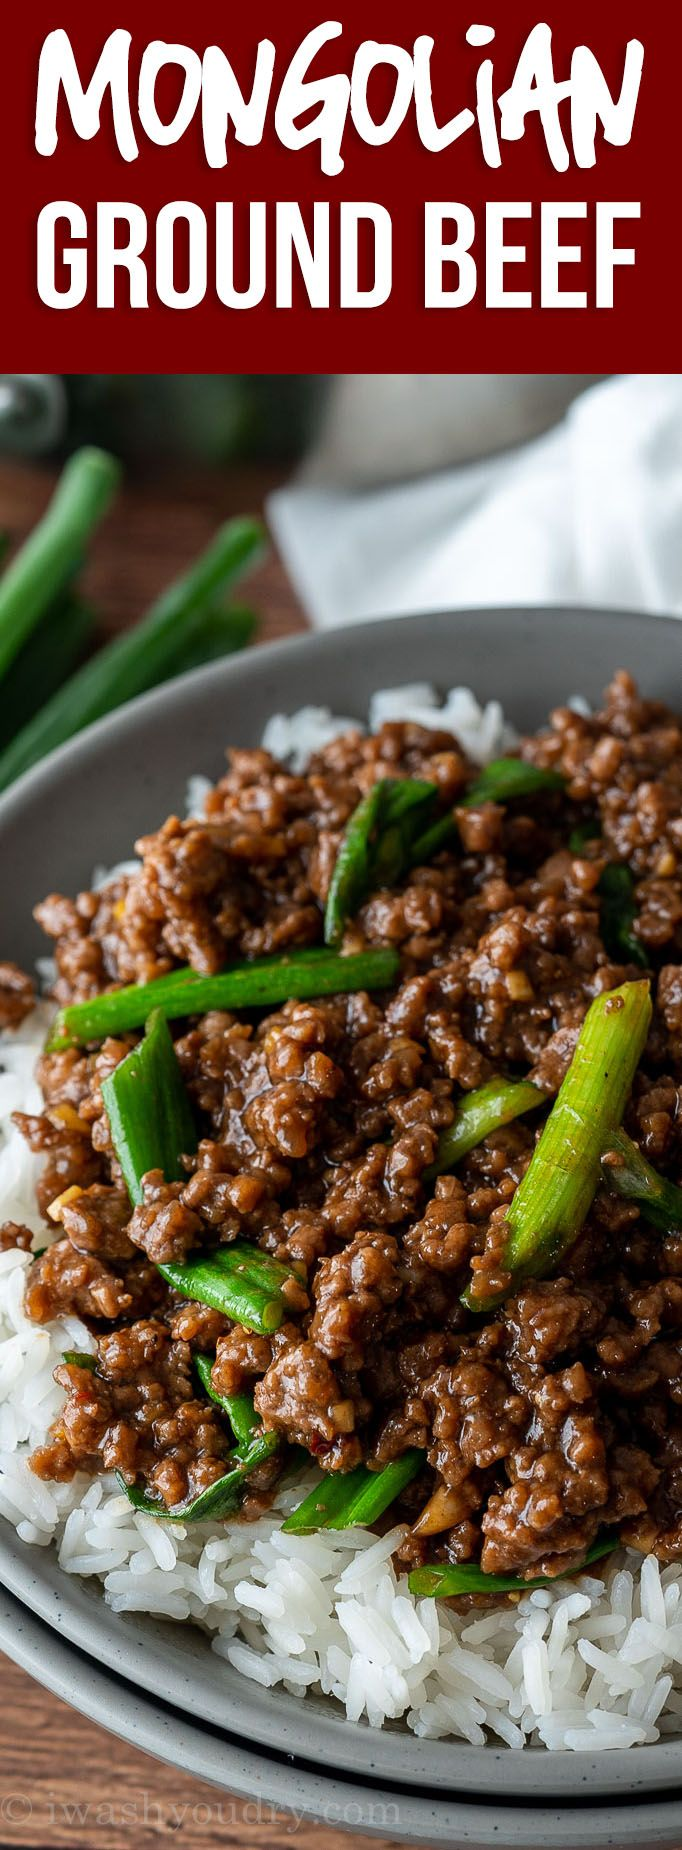 Easy Mongolian Ground Beef images